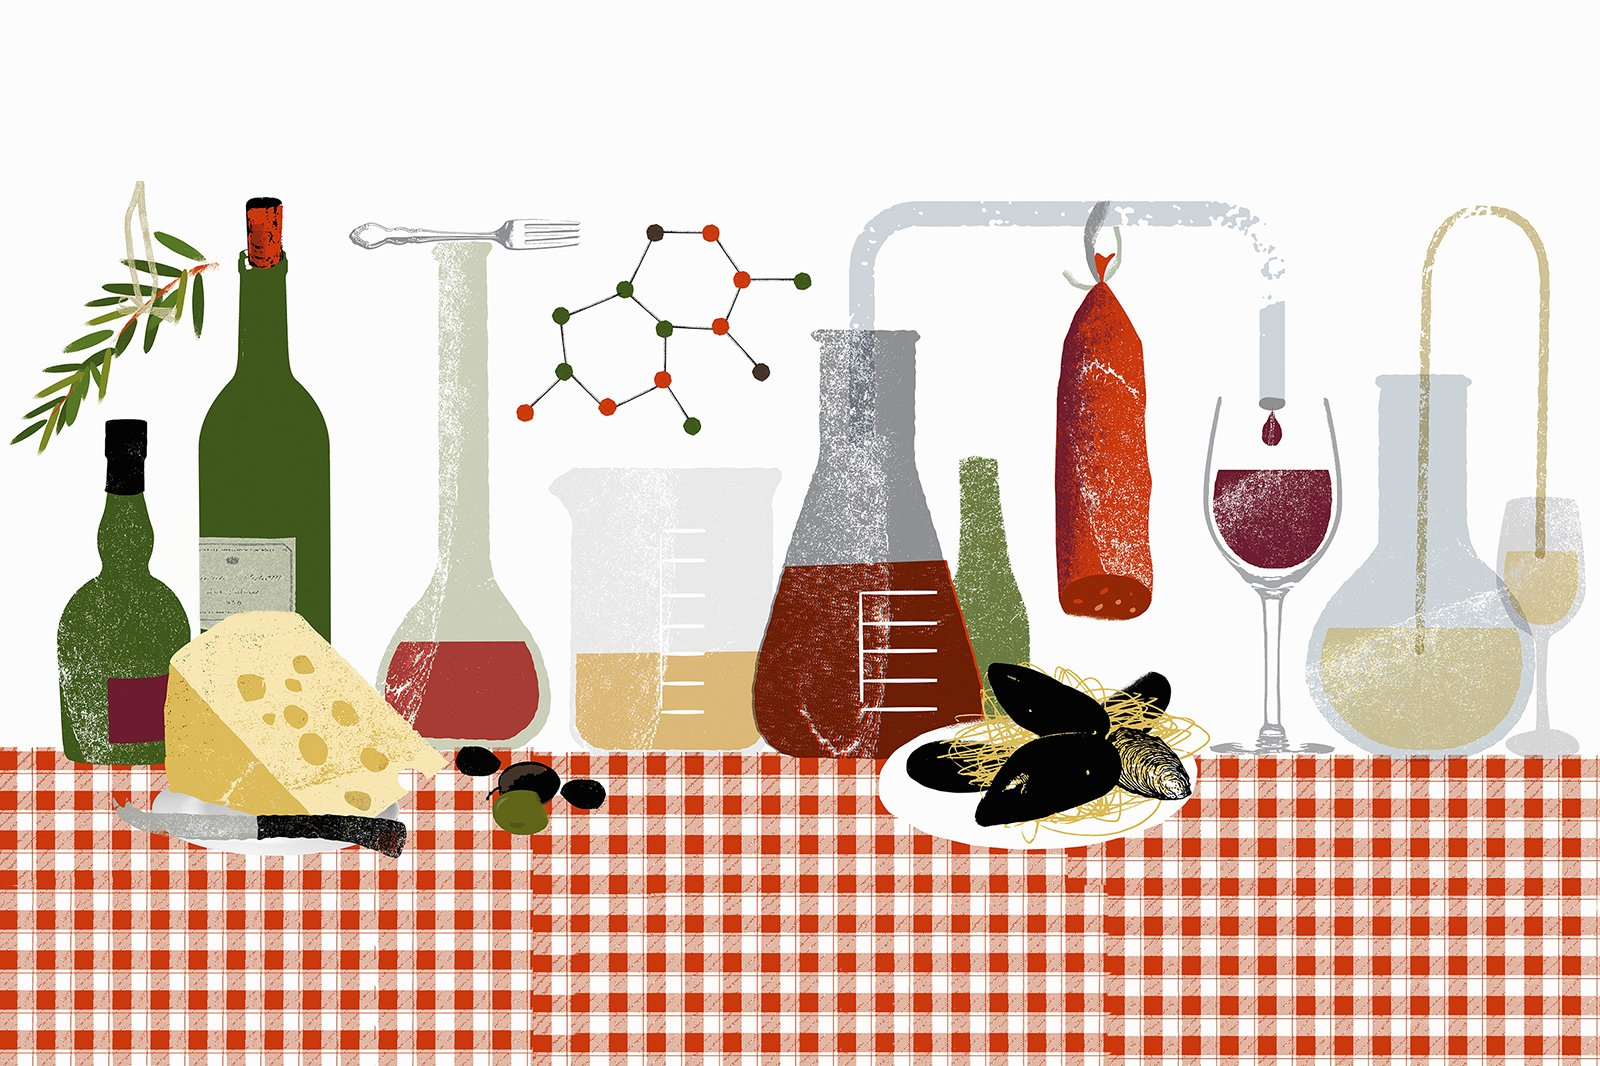 An illustration of a table cloth laid with both food and drink and laboratory equipment – a metaphor for nutritional science